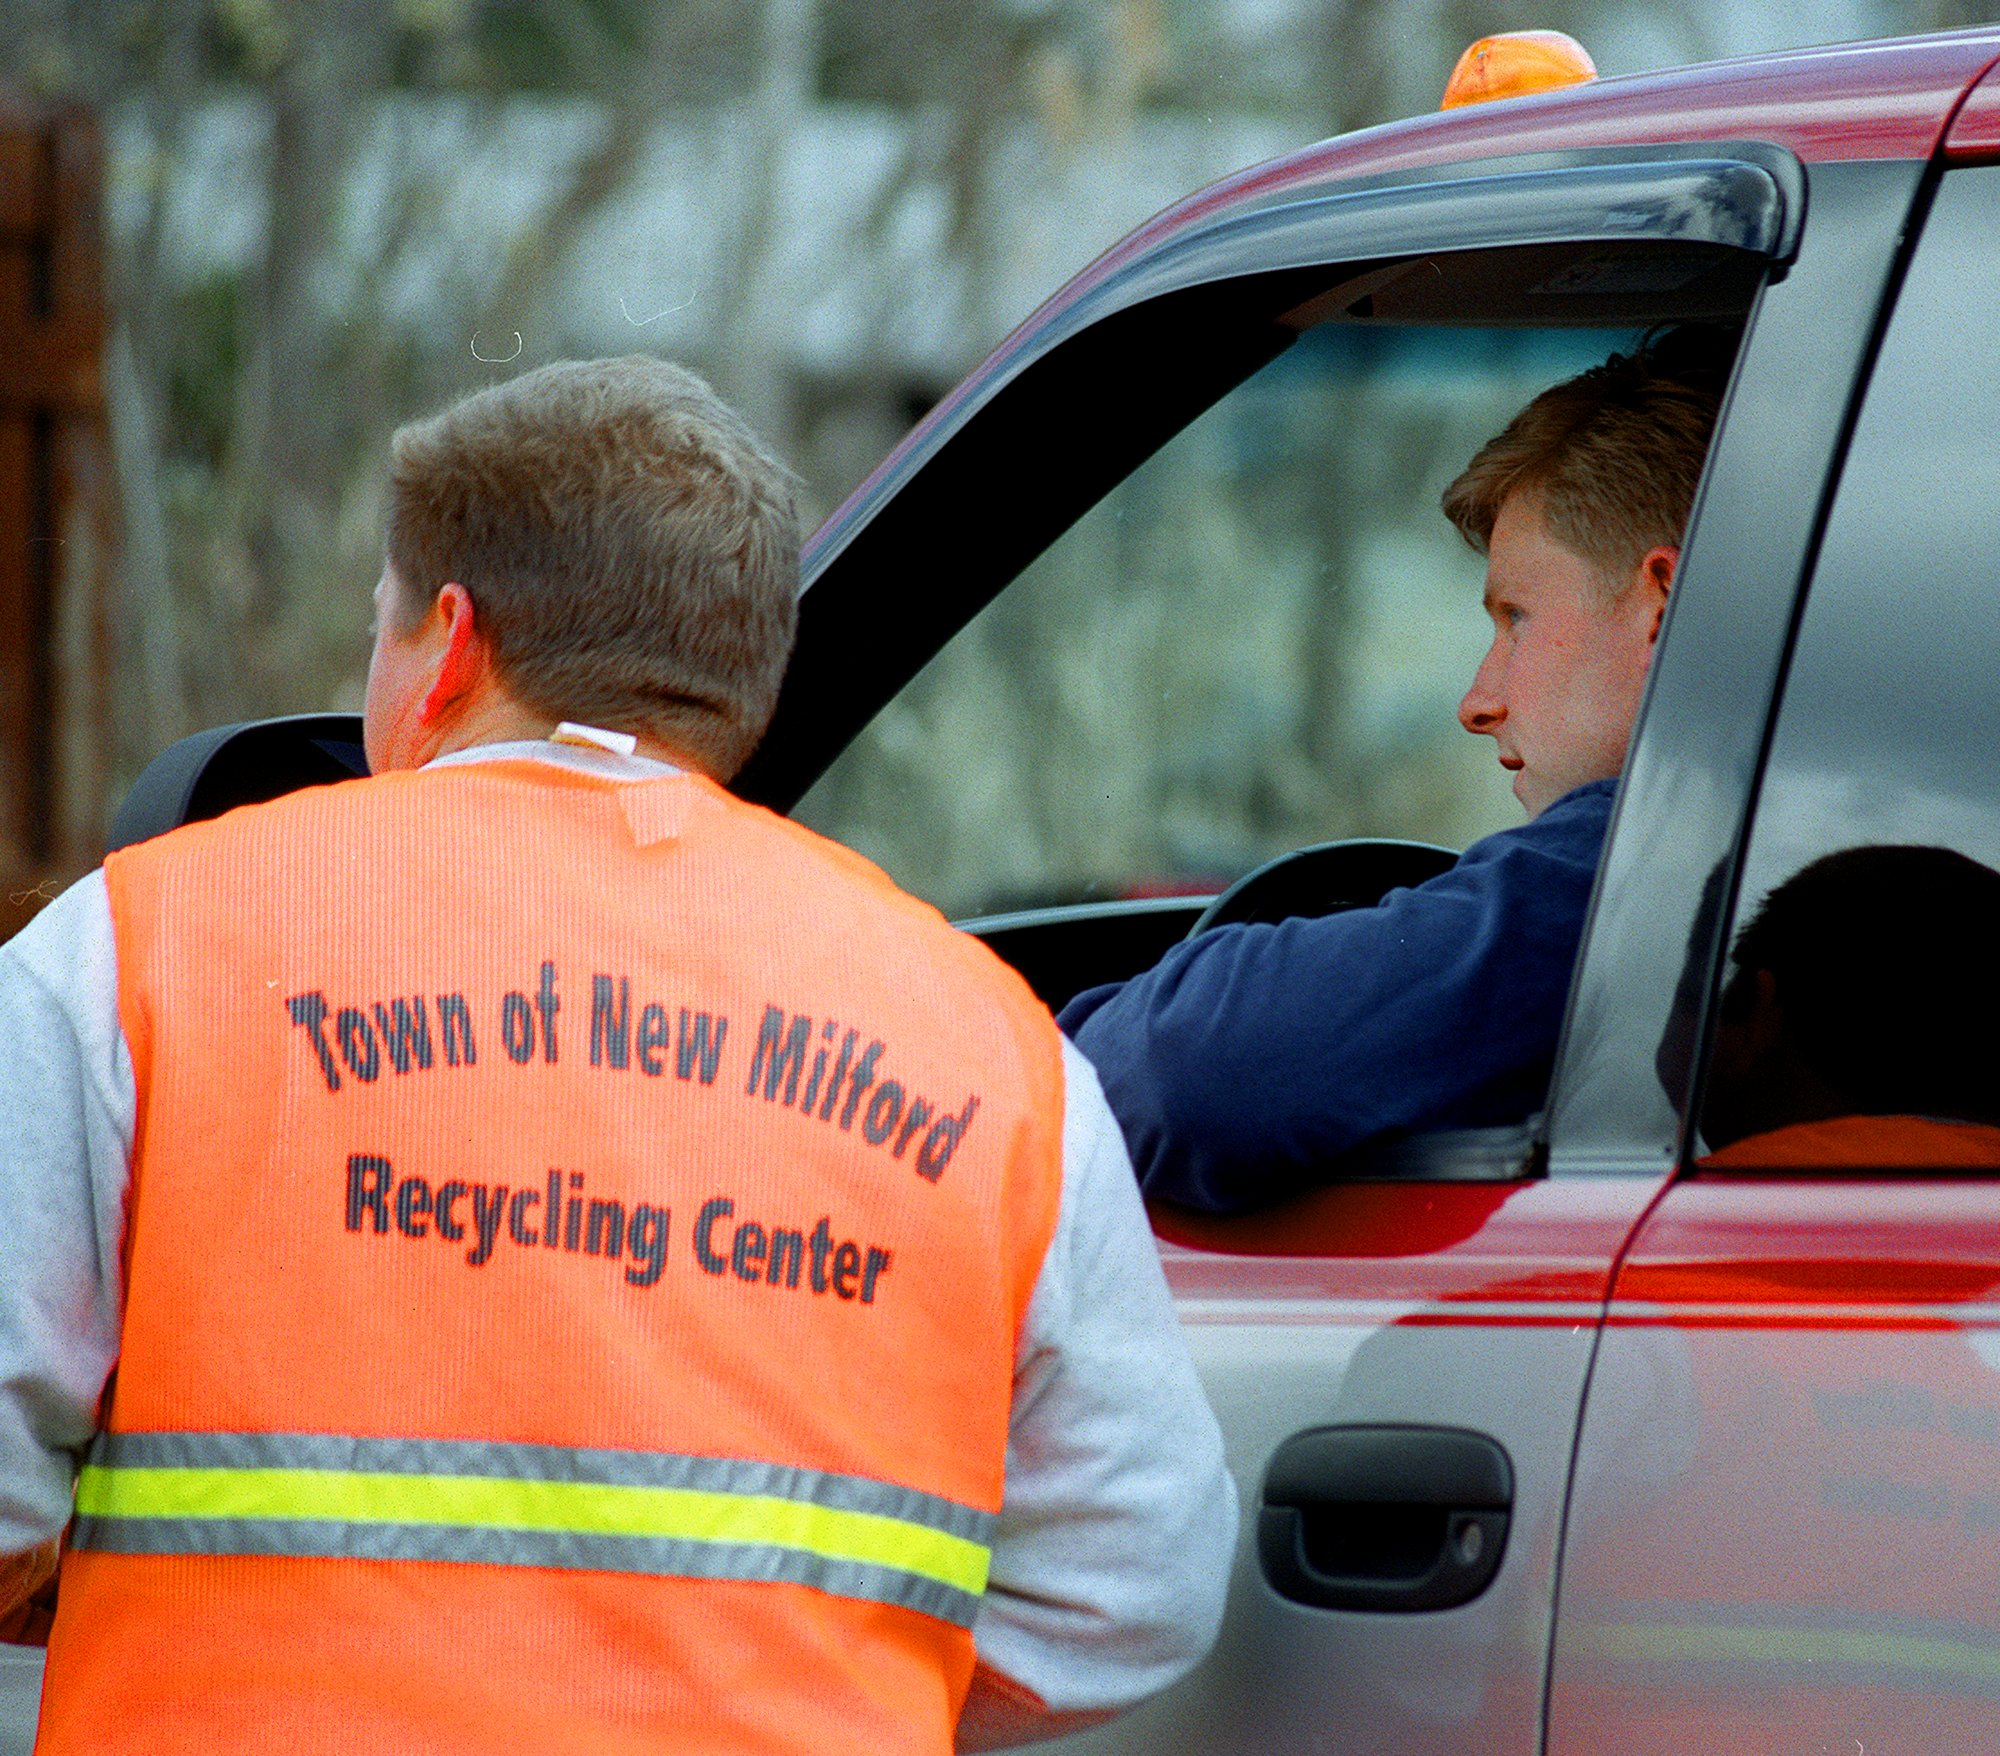 New milford recycling center not taking motor oil newstimes for Motor oil recycling center